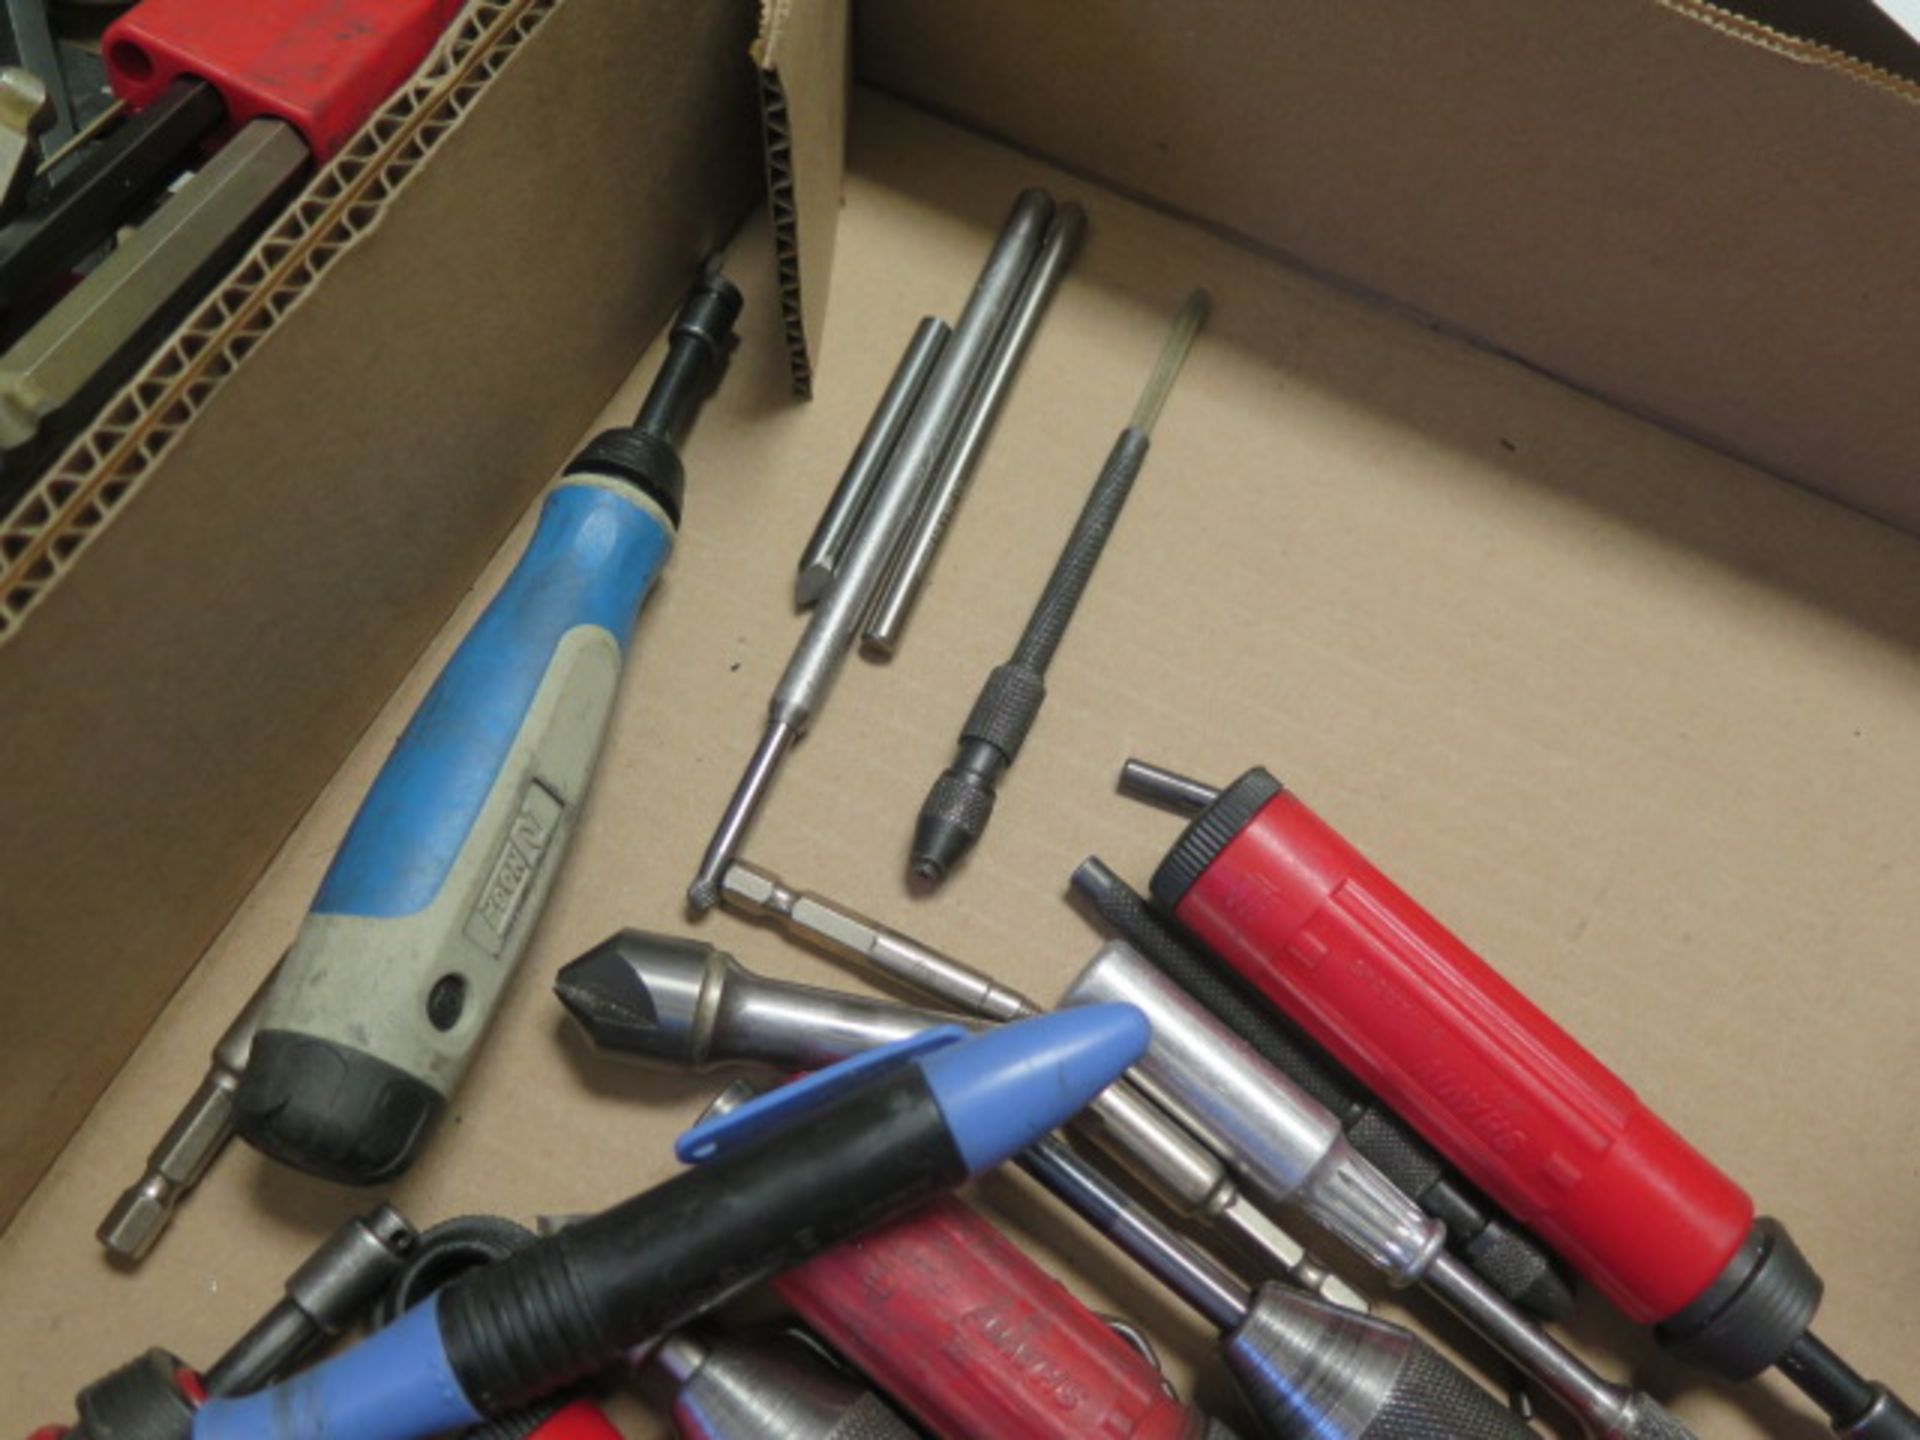 Deburring Tools (SOLD AS-IS - NO WARRANTY) - Image 3 of 5